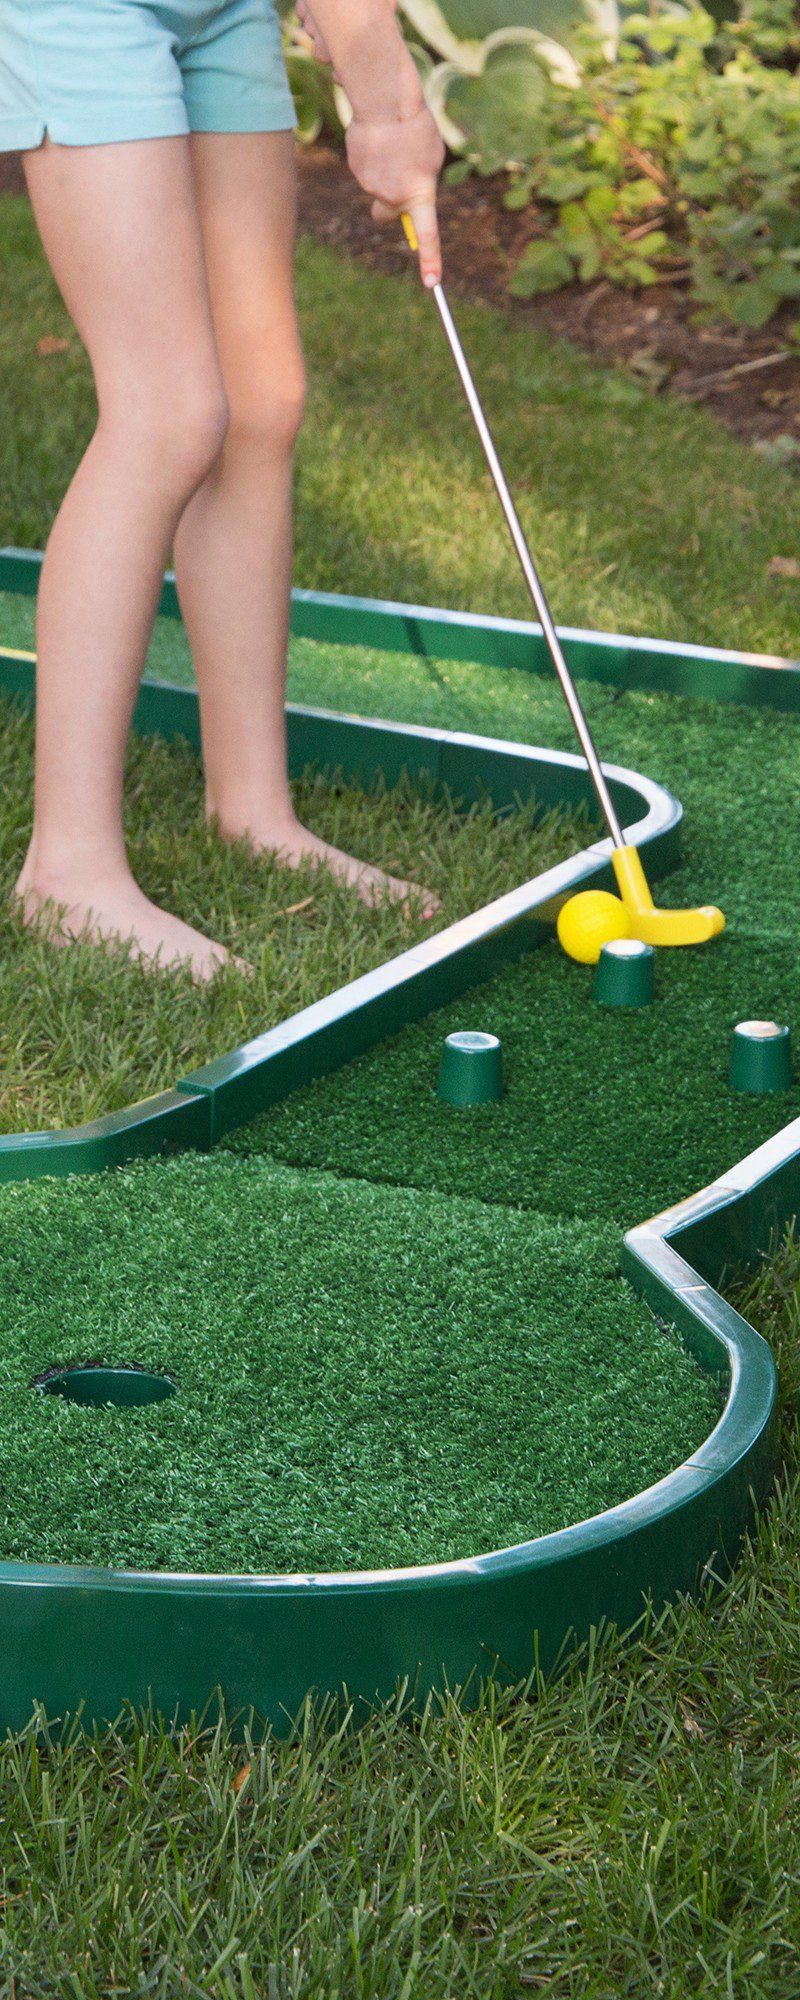 Mini Golf Is As Close As The Next Room Or The Backyard This Reconfigurable Course Has 25 Possible Designs That Kids A Mini Golf Set Mini Golf Course Mini Golf